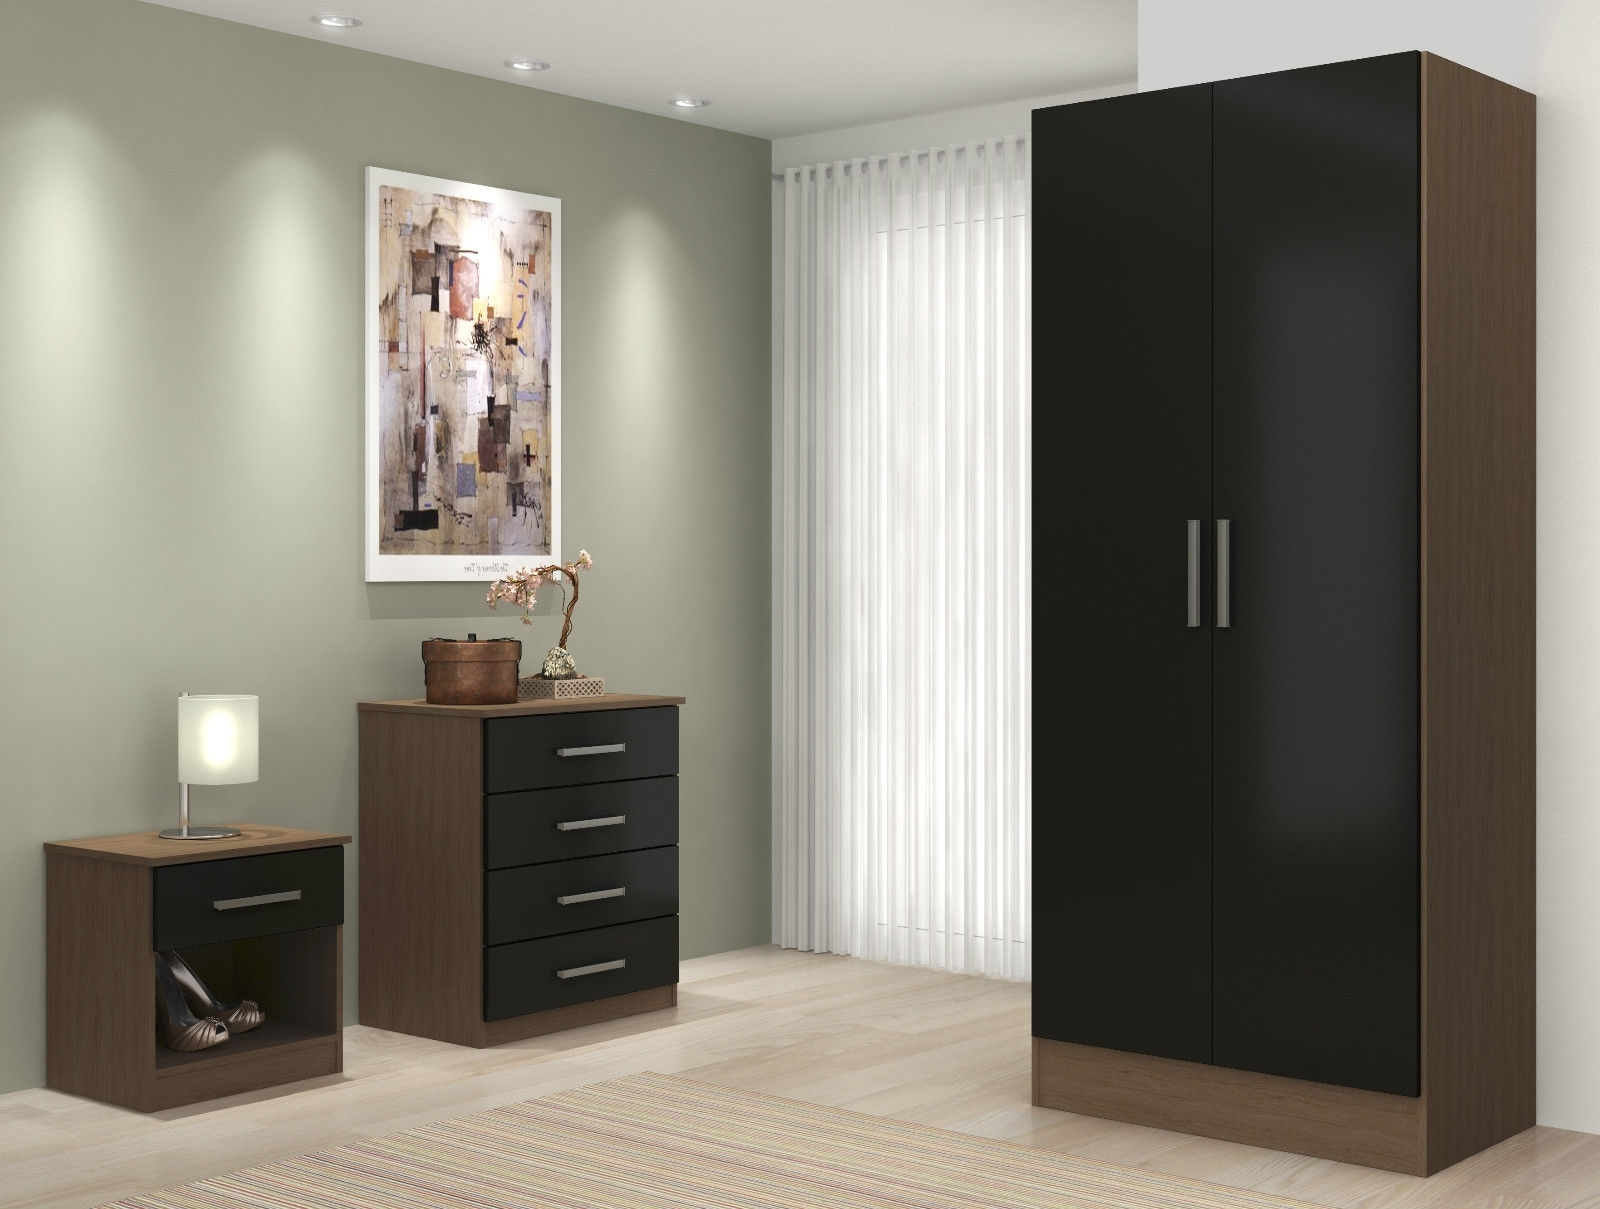 Well Known High Gloss Sliding Wardrobe Doors Wardrobes White Black That Can Throughout Wardrobes Sets (View 15 of 15)